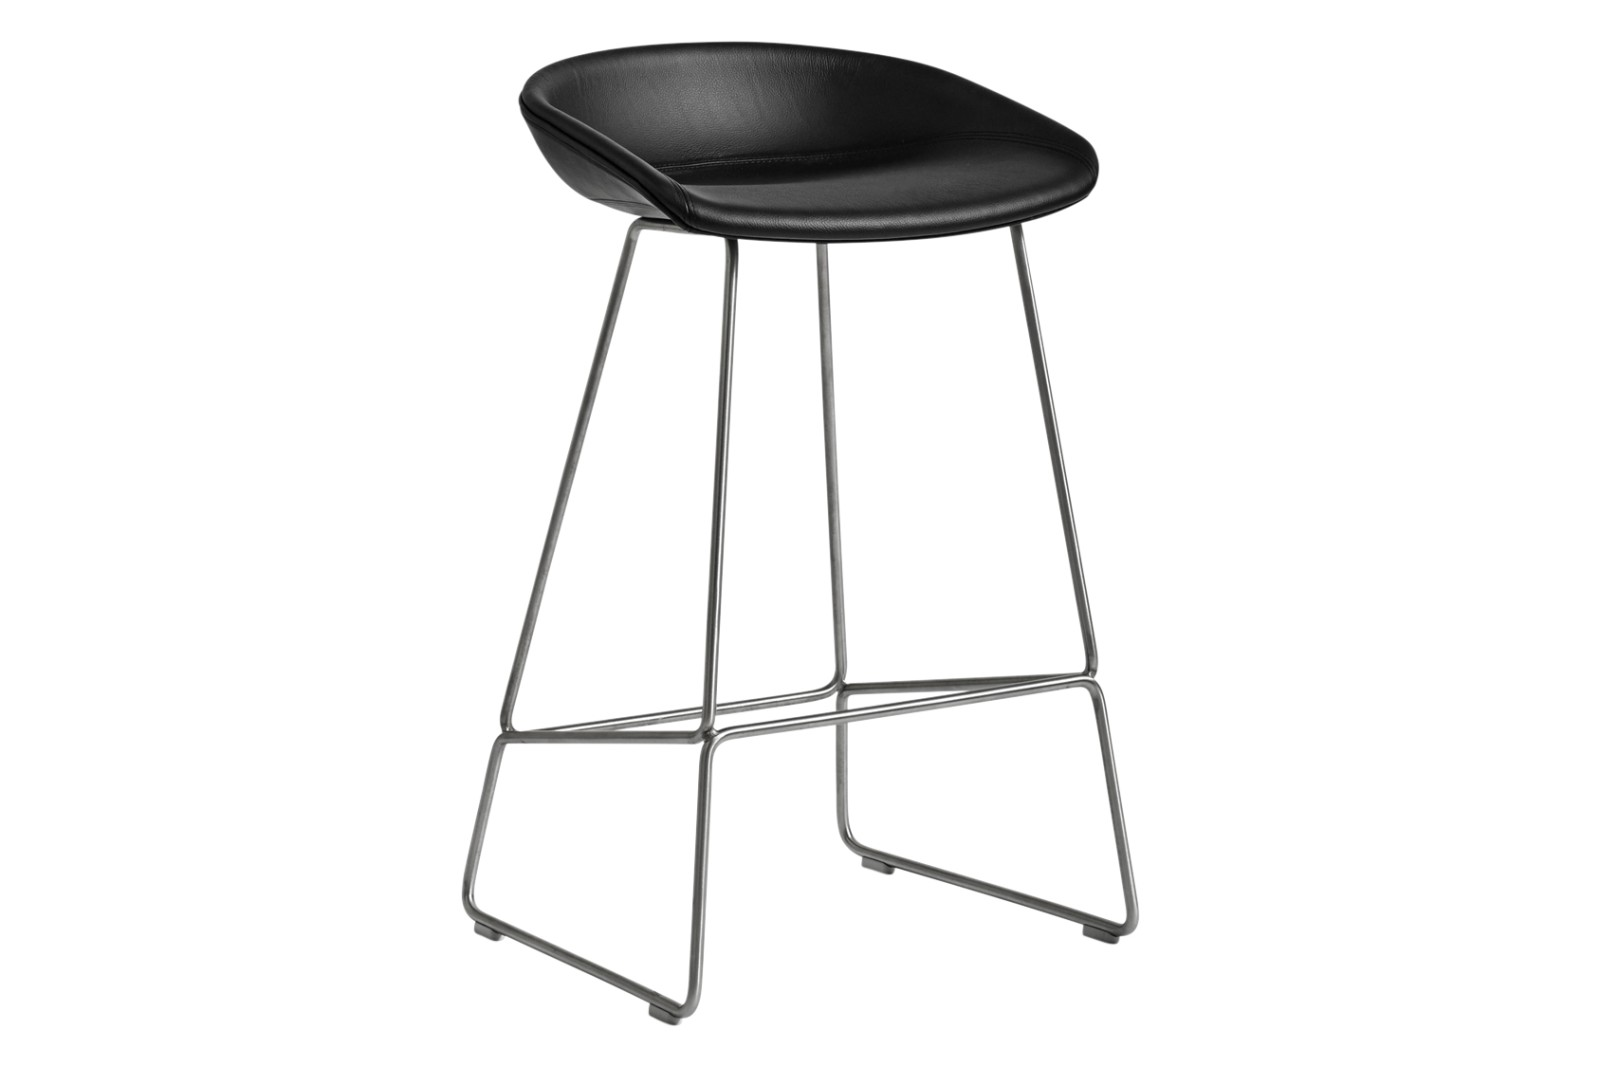 AAS 39 Low Bar Stool Fabric Group 1, Metal Stainless Steel